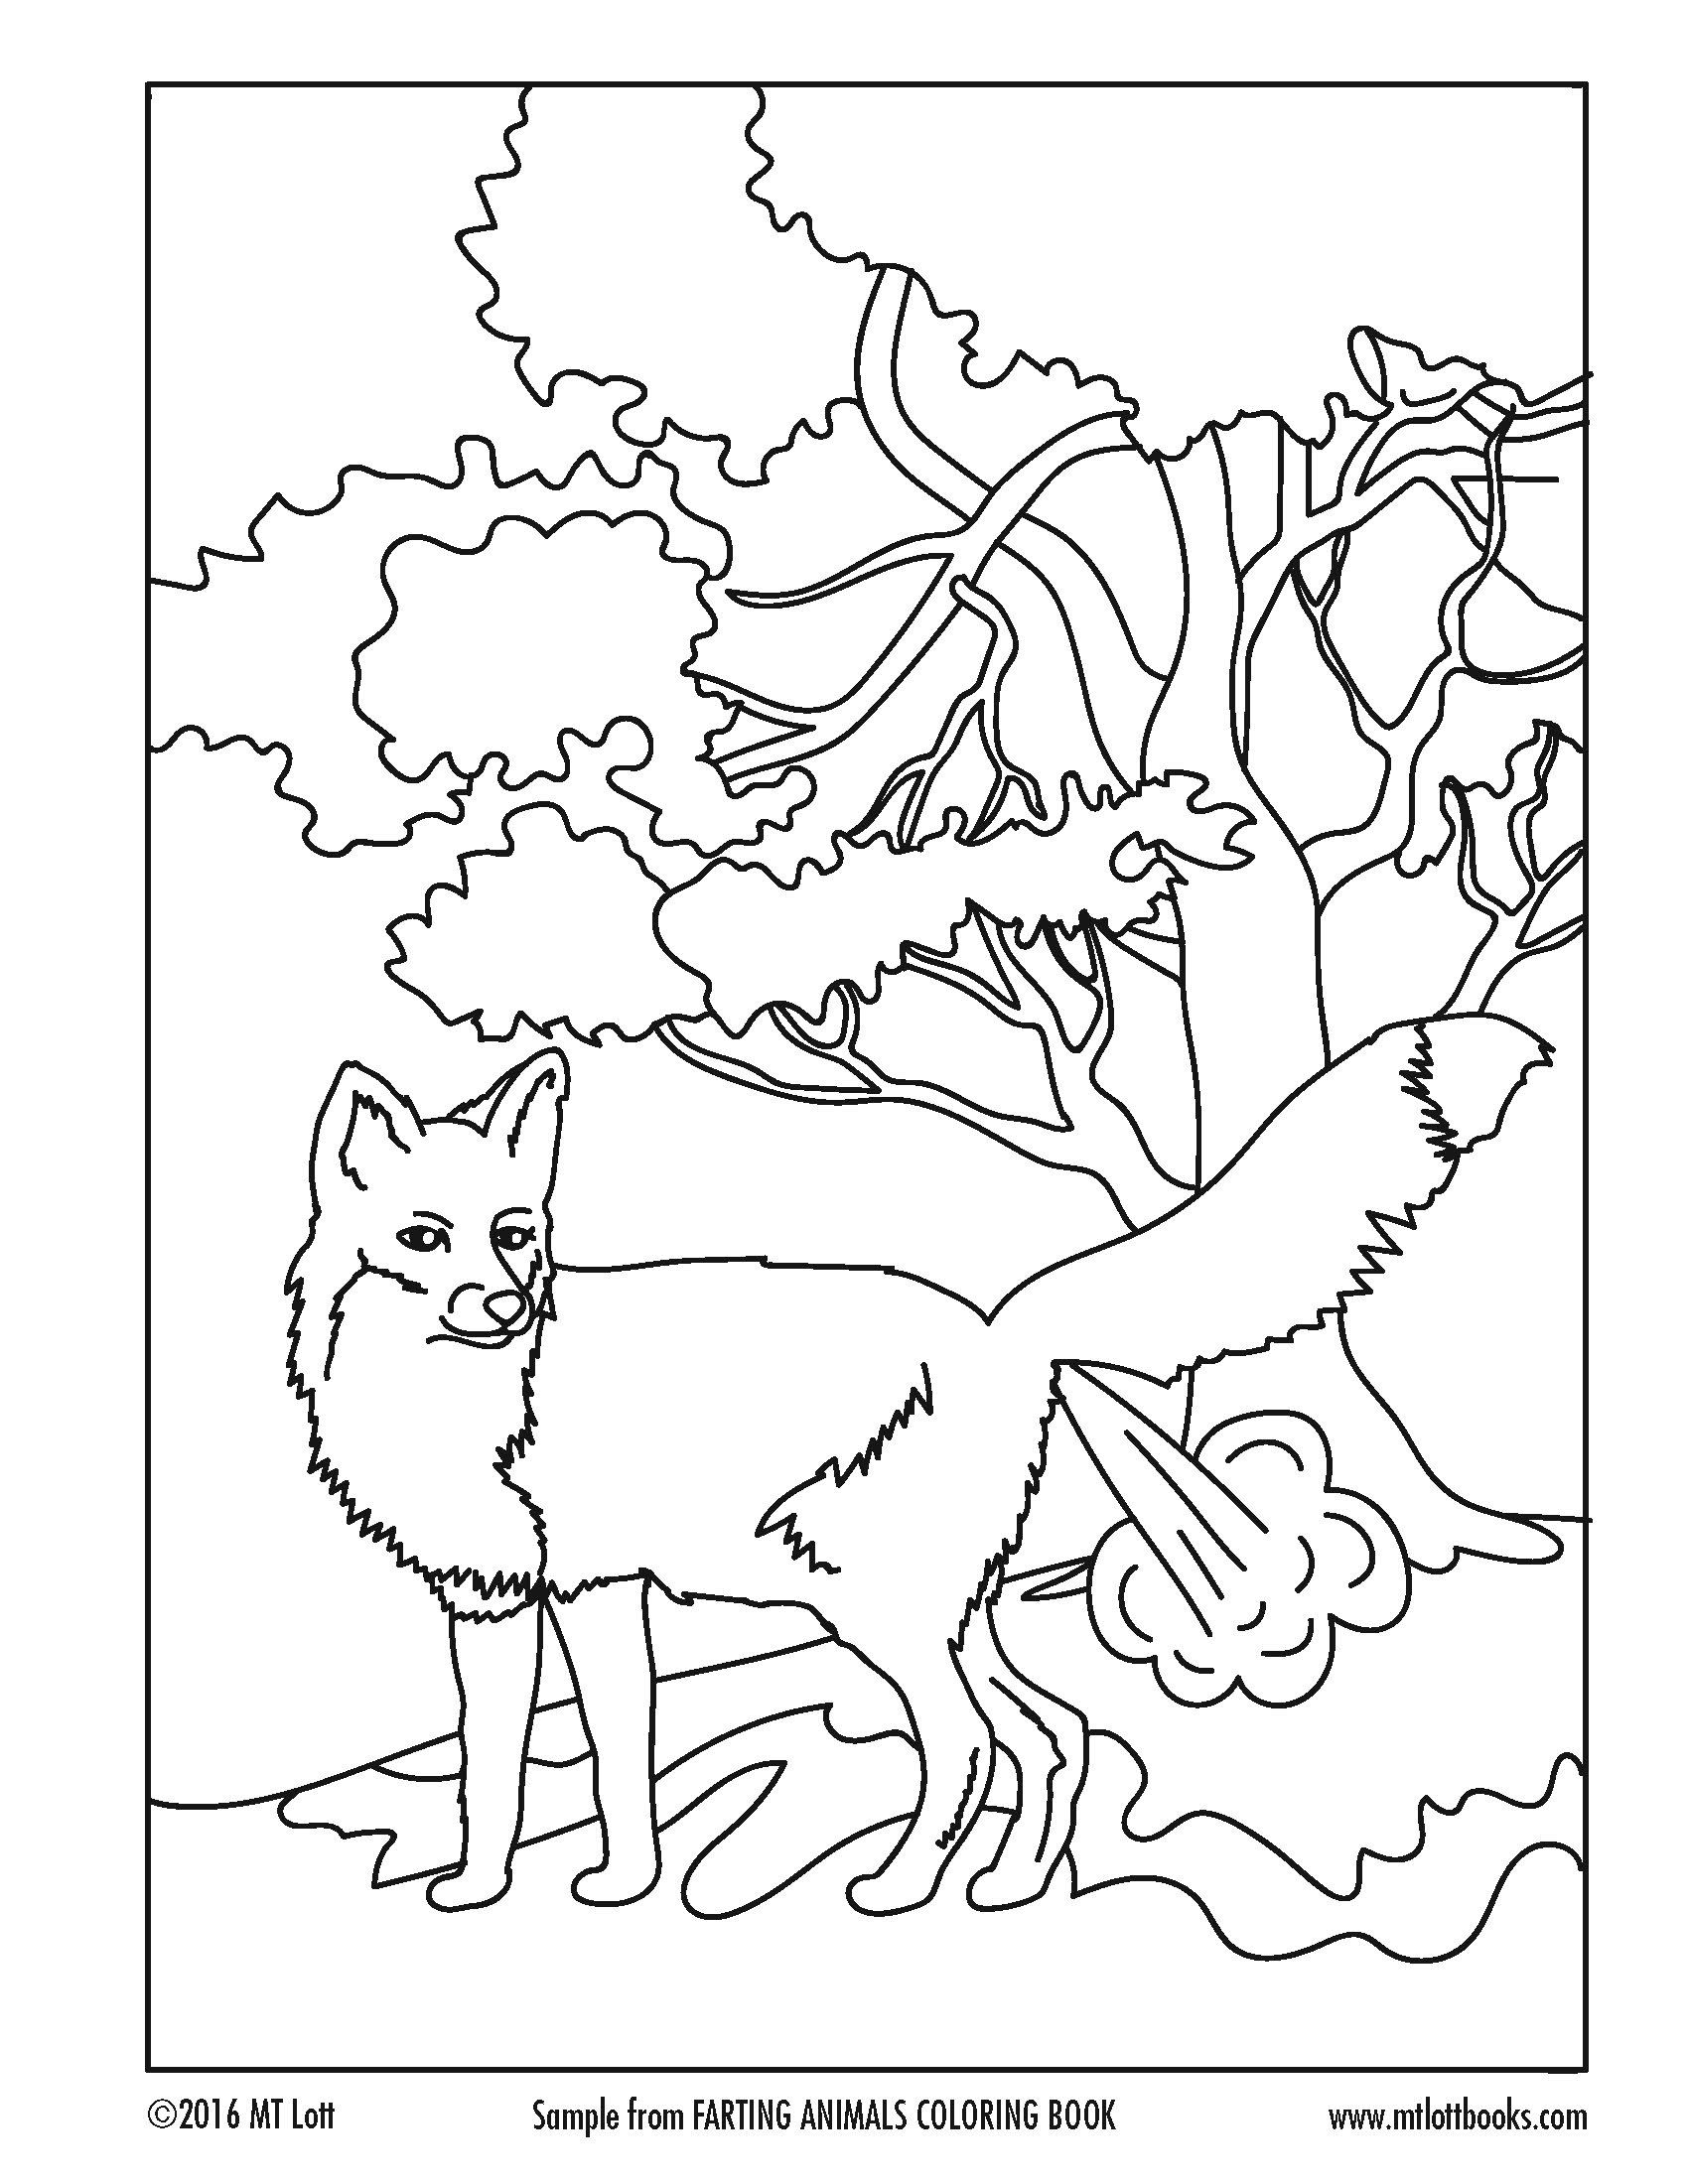 Free Coloring Page From M T Lott S Farting Animals Coloring Book